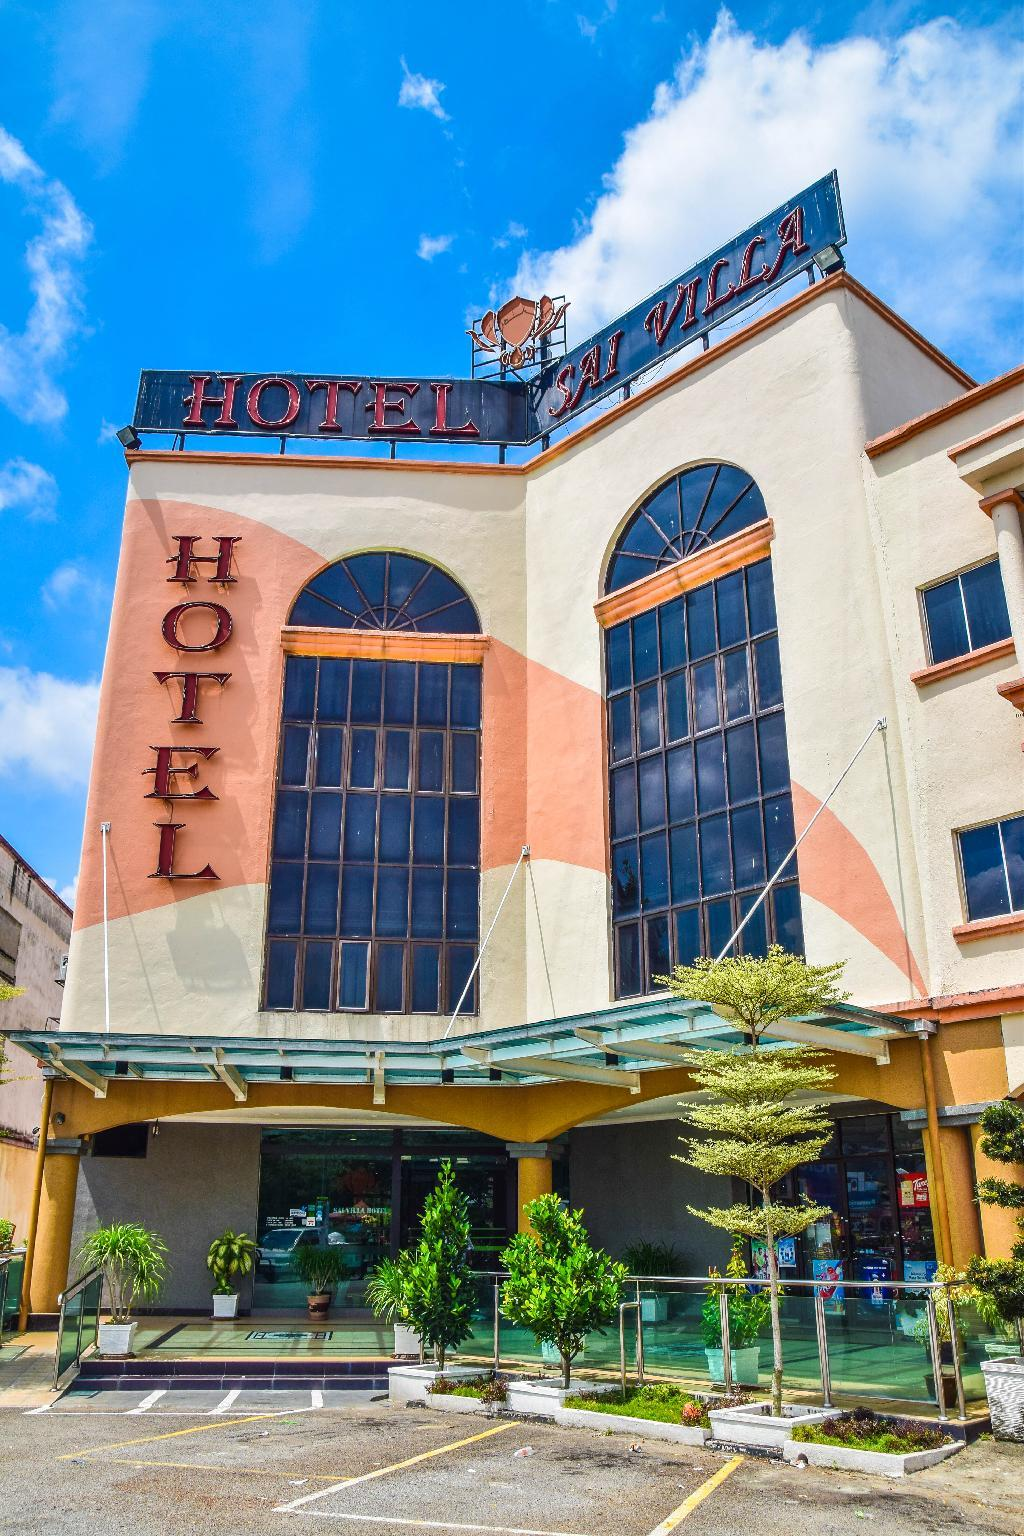 Nilai Hotels - 𝐁𝐨𝐨𝐤 𝐇𝐨𝐭𝐞𝐥𝐬 in Nilai @ Rs  661